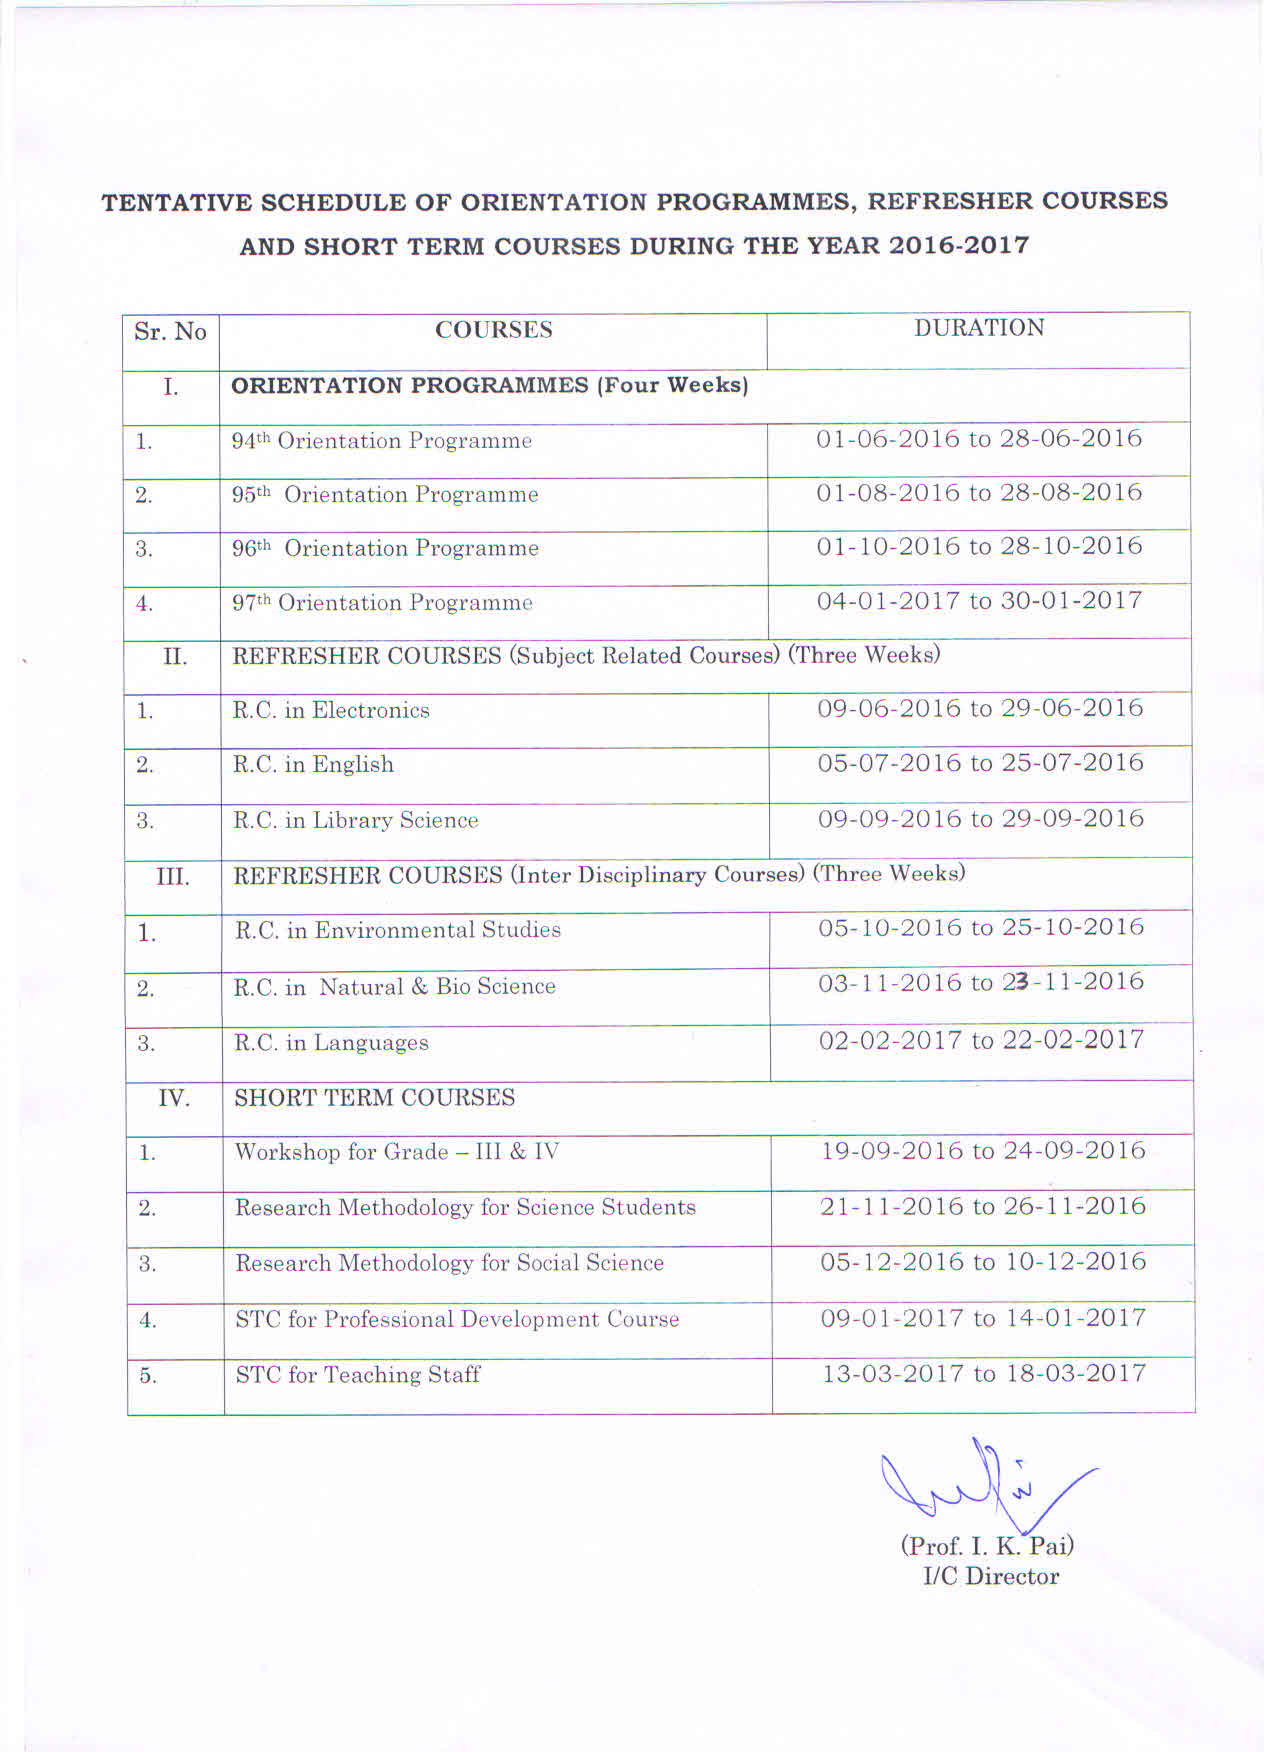 hight resolution of https www unigoa ac in downloads ugc hrdc tentative schedule for 2016 17 jpg